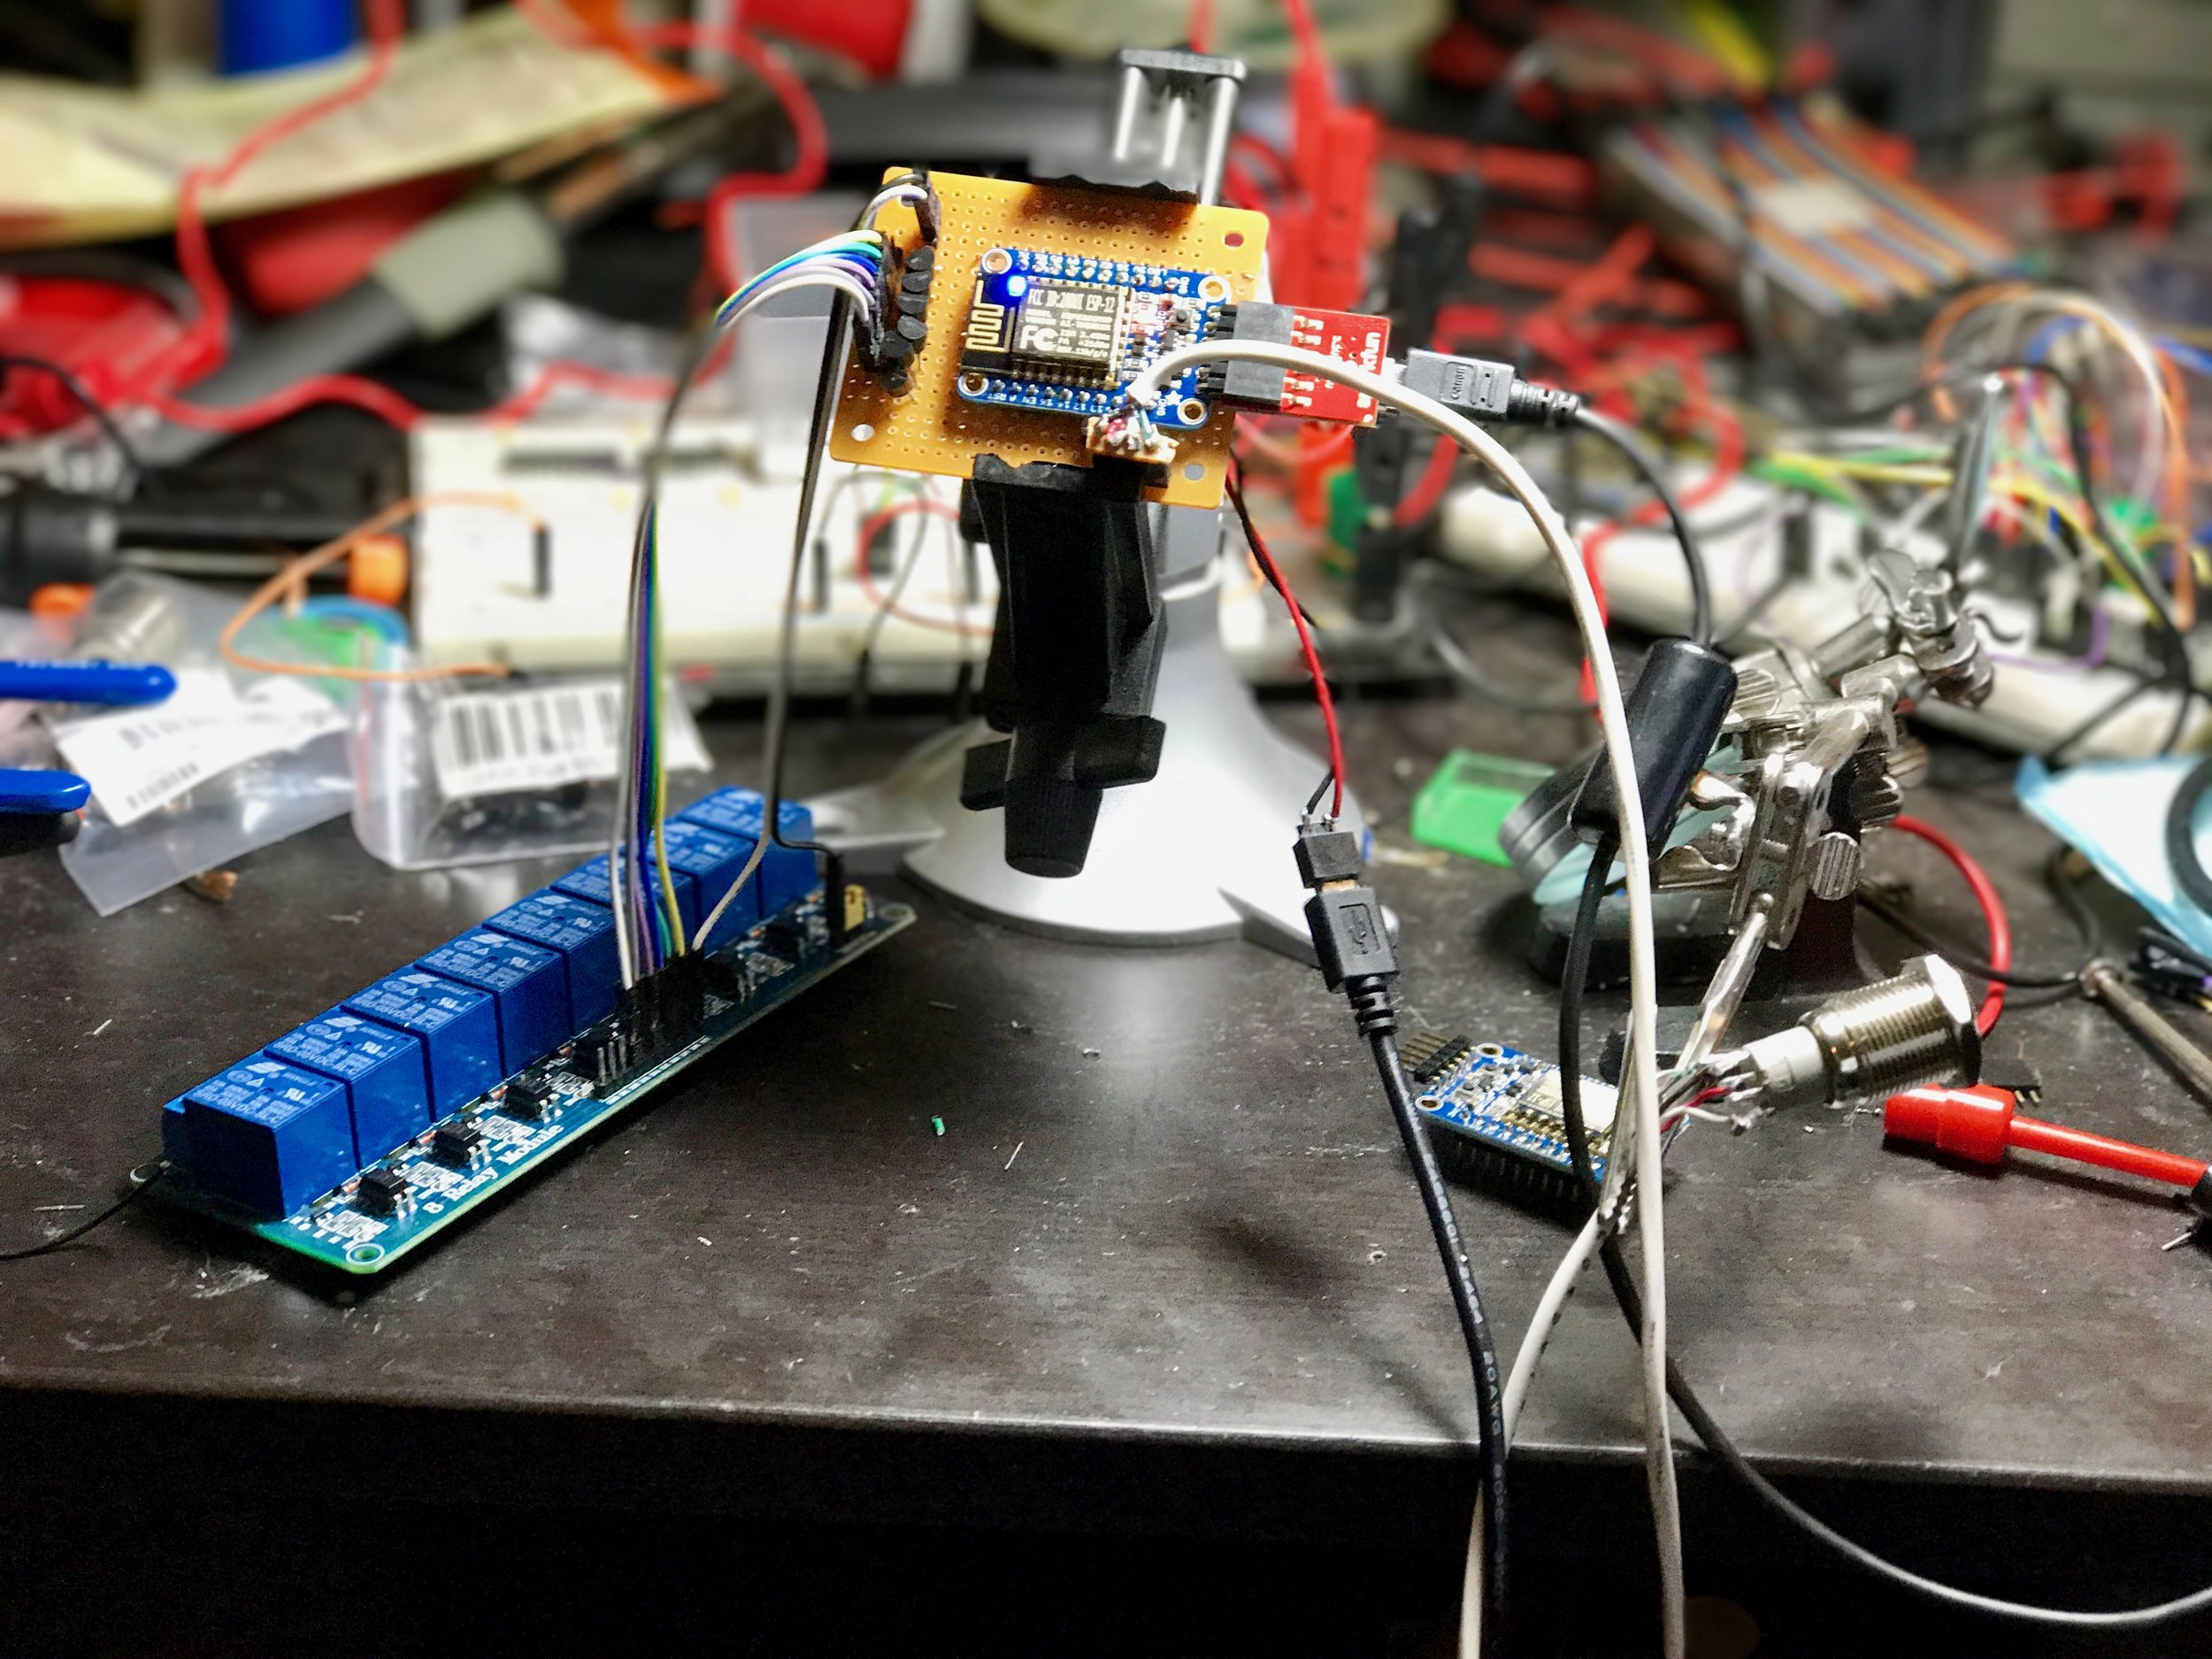 Initial testing of the relay board and the HUZZAH.